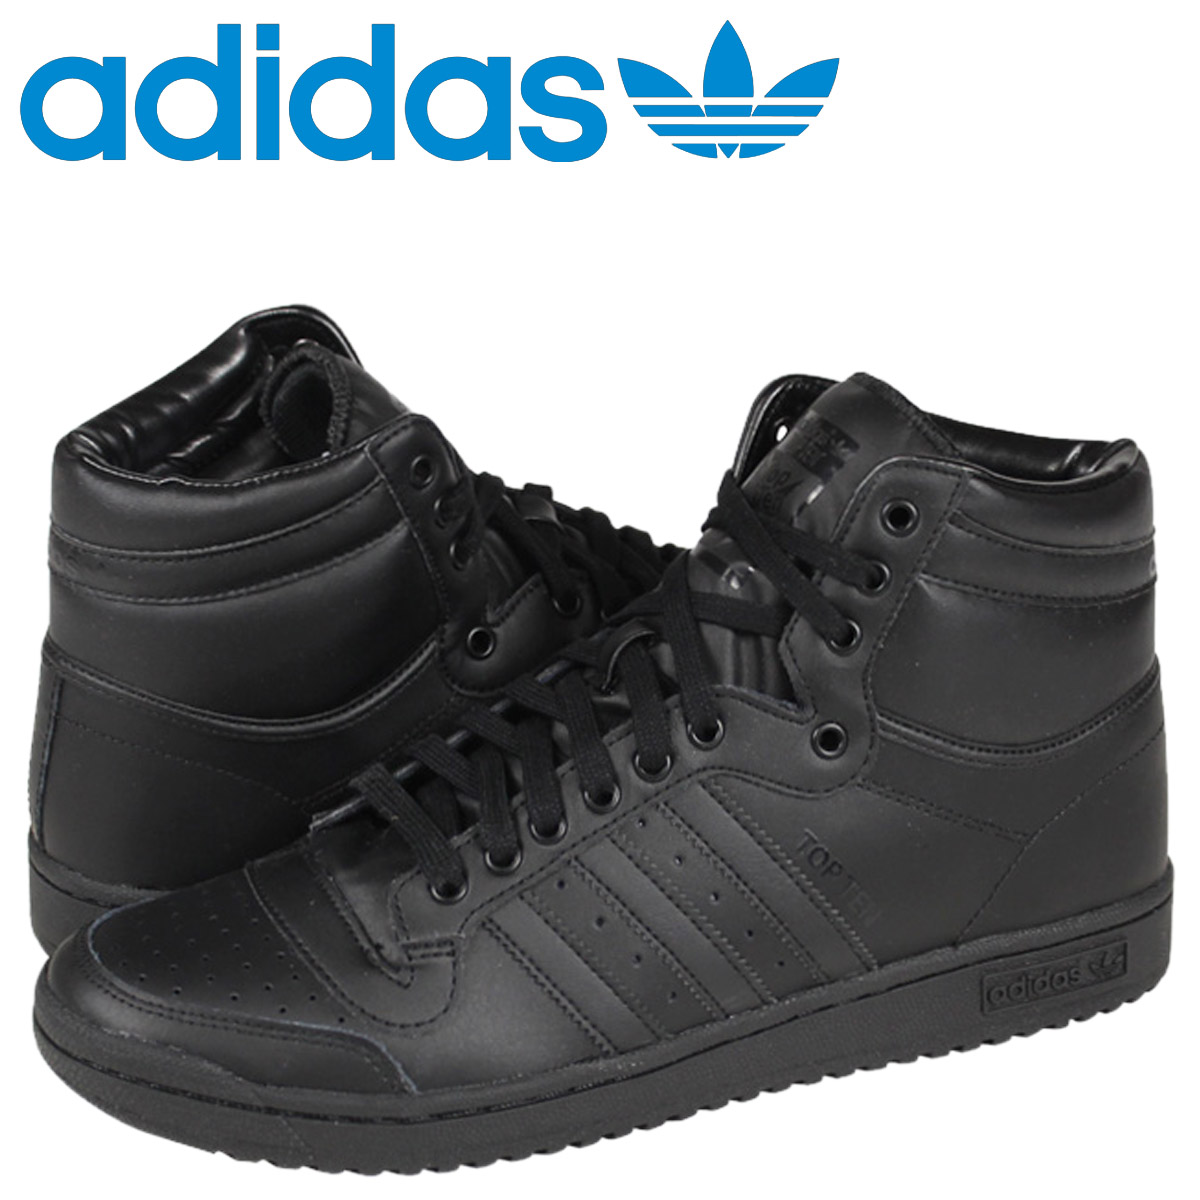 low priced 7388c 8e5a9 adidas originals  ☆ TOP TEN HI ☆